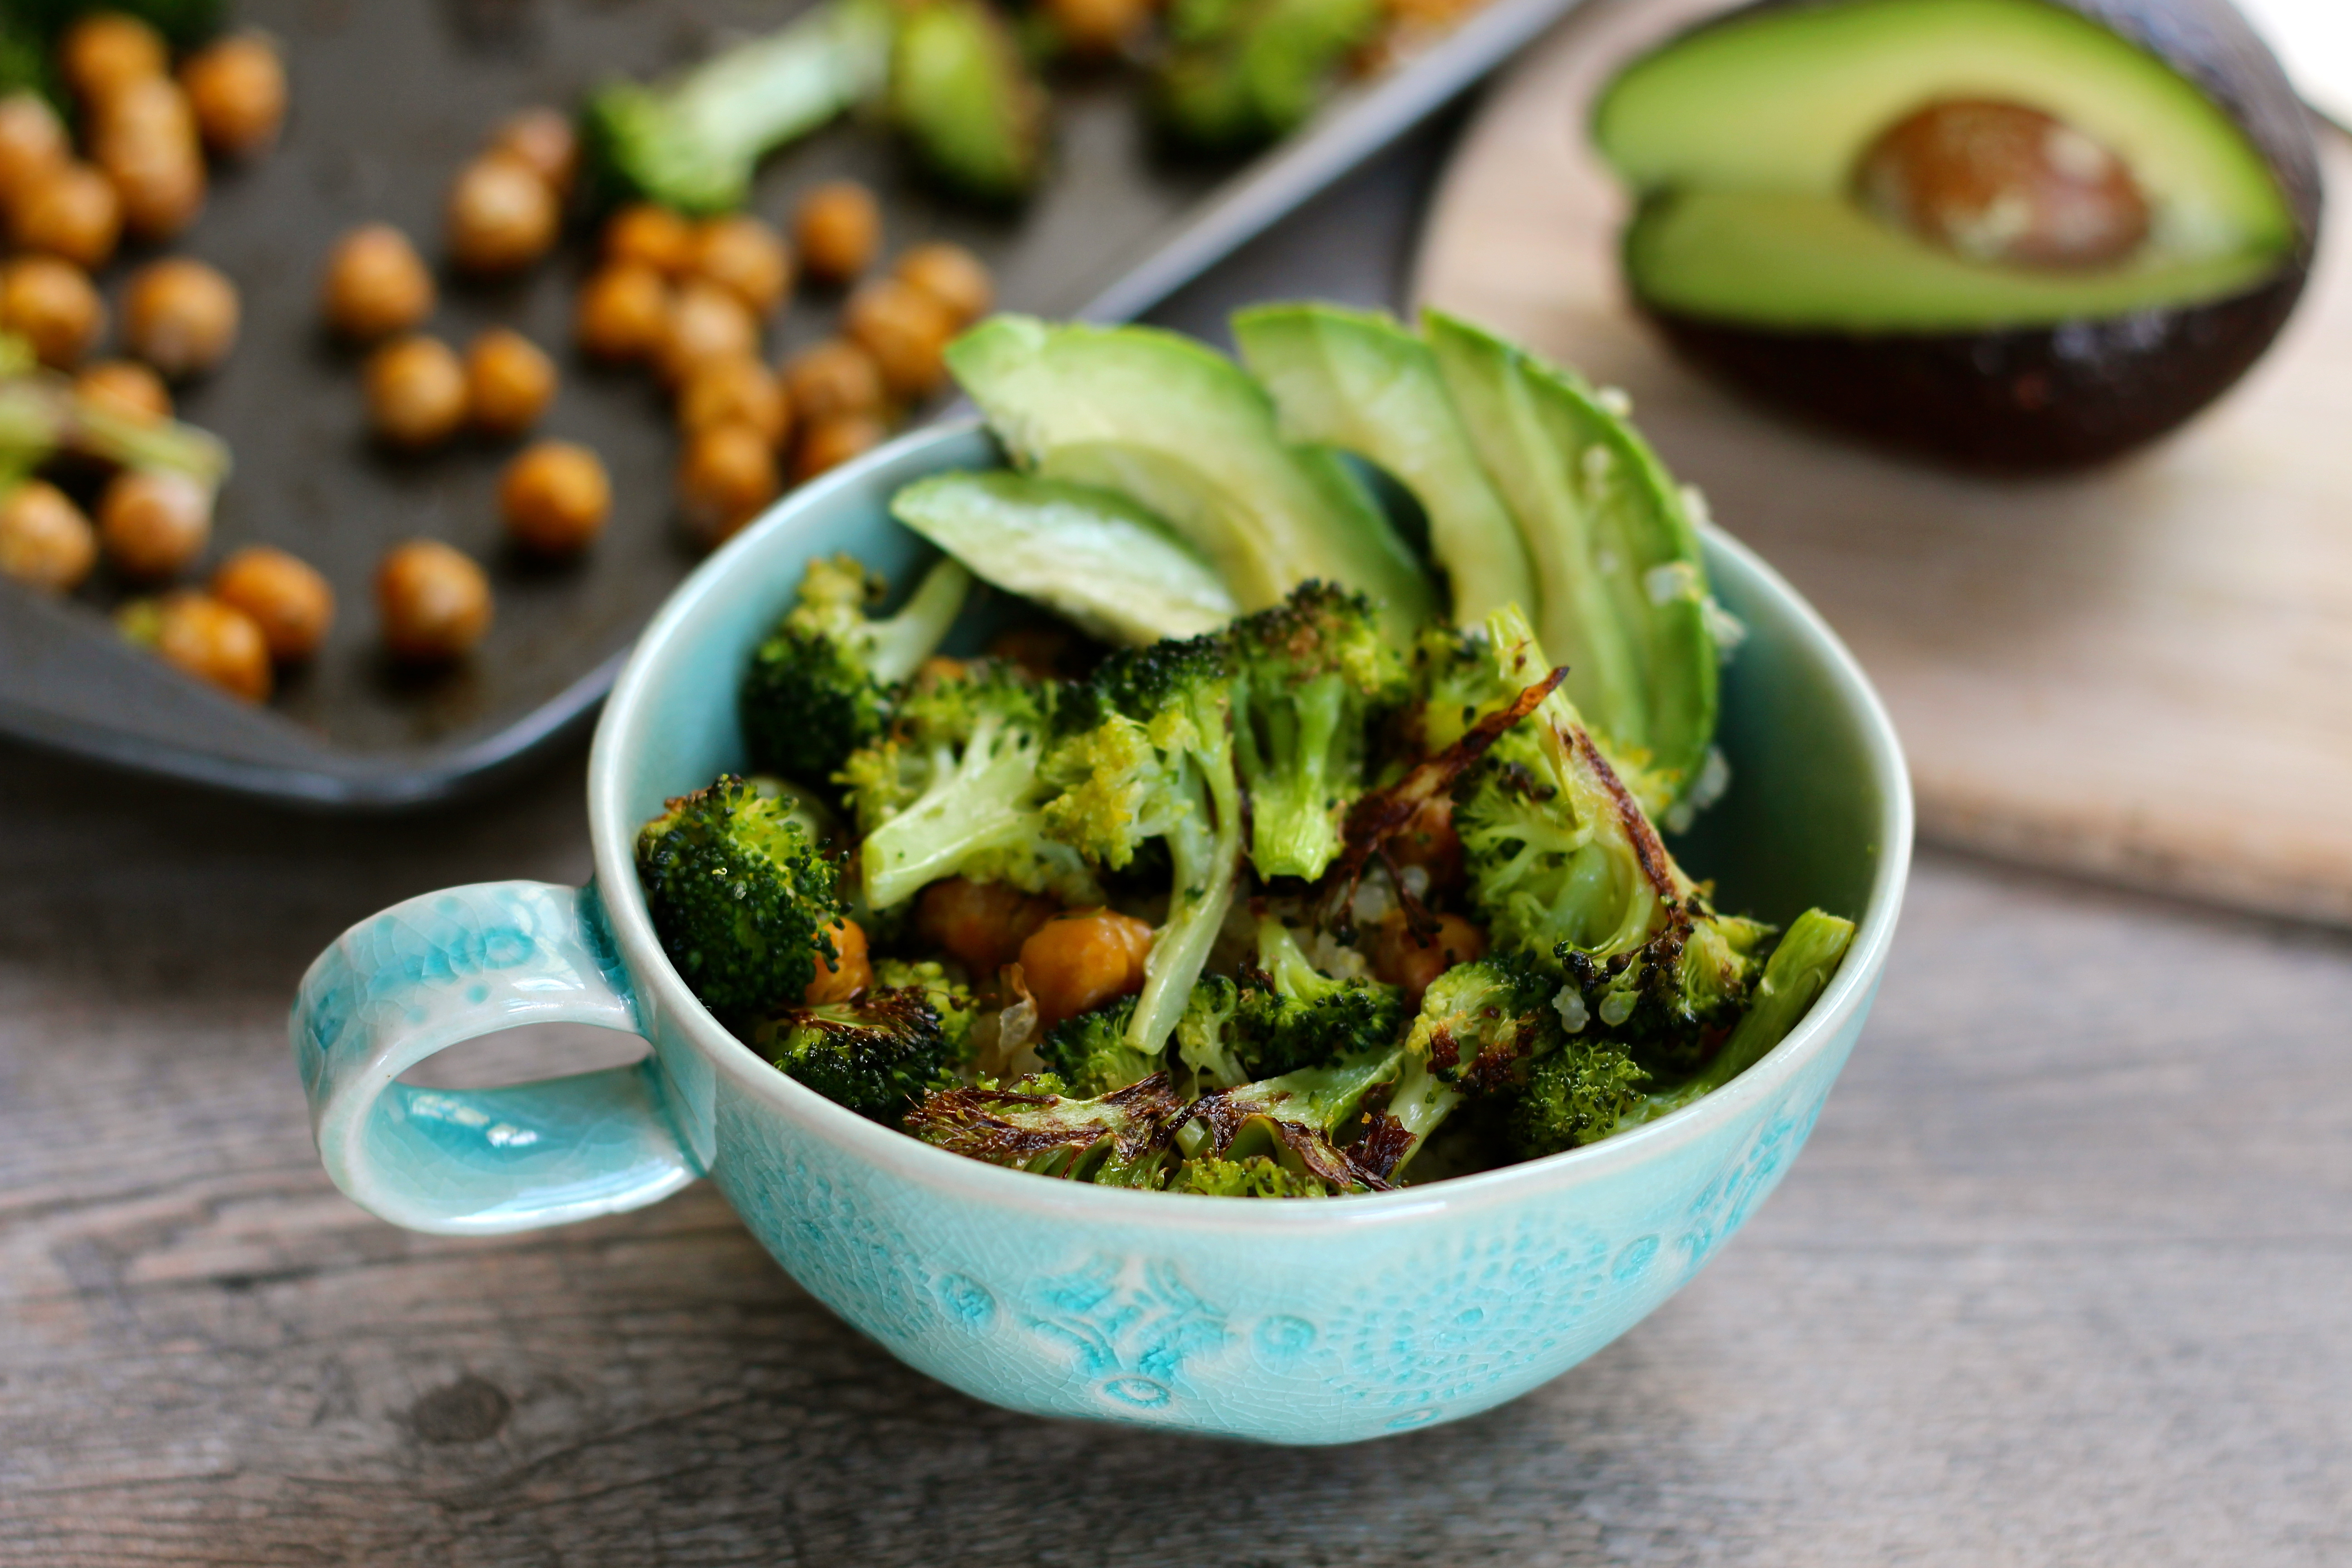 ... Know Where to Start} Roasted Broccoli and Chickpeas on Lemony Quinoa